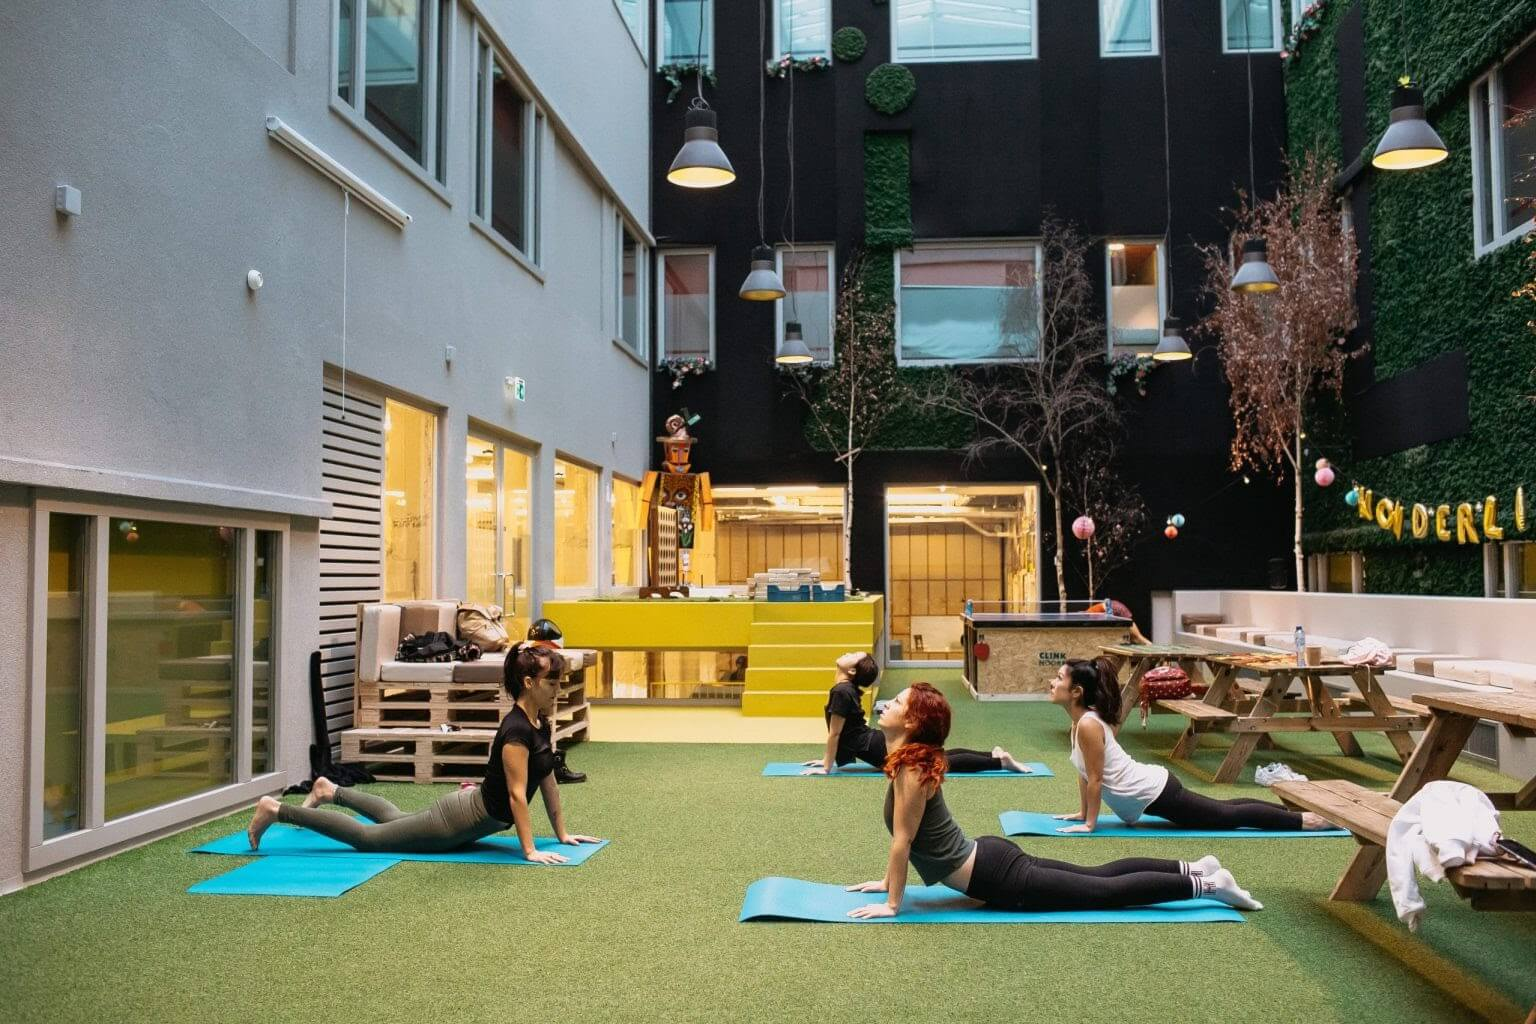 Amsterdam Yoga - Things To Do Alone in Amsterdam - Clink Hostels